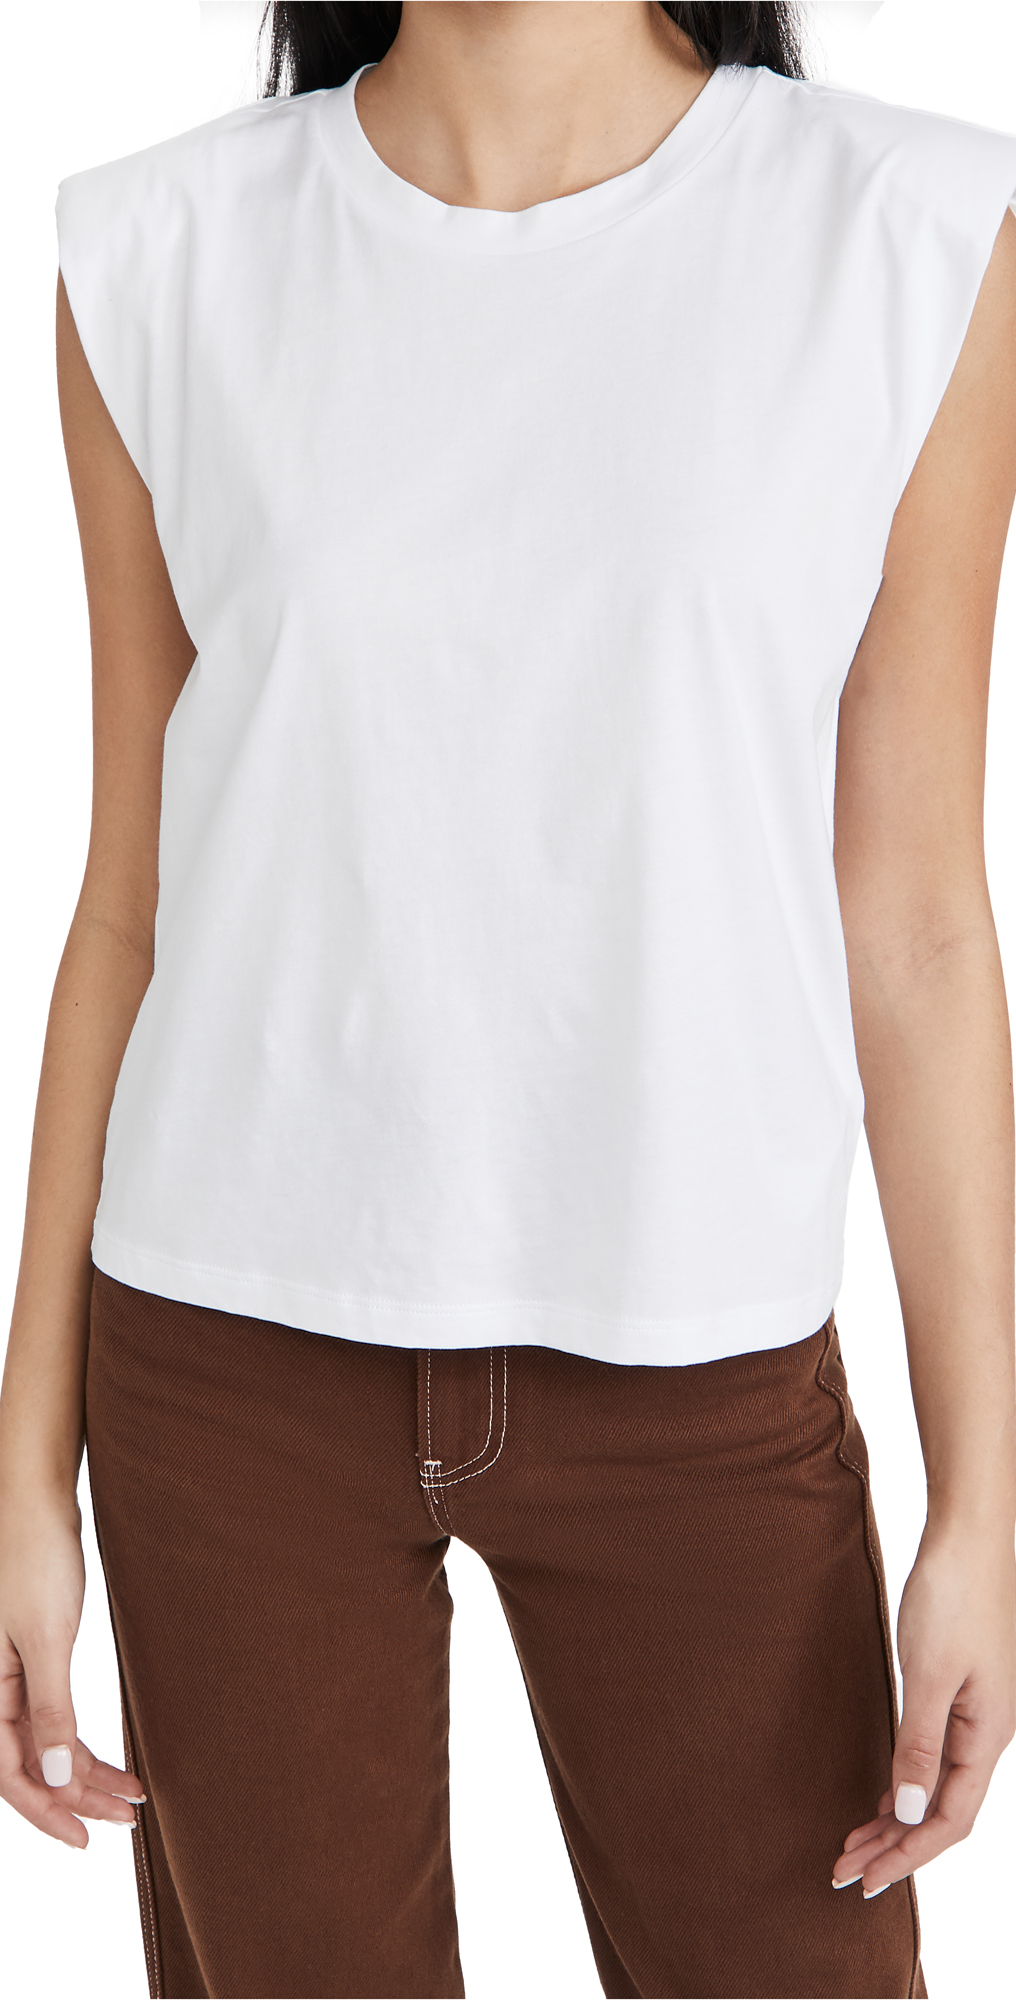 7 For All Mankind Shoulder Pad Tee